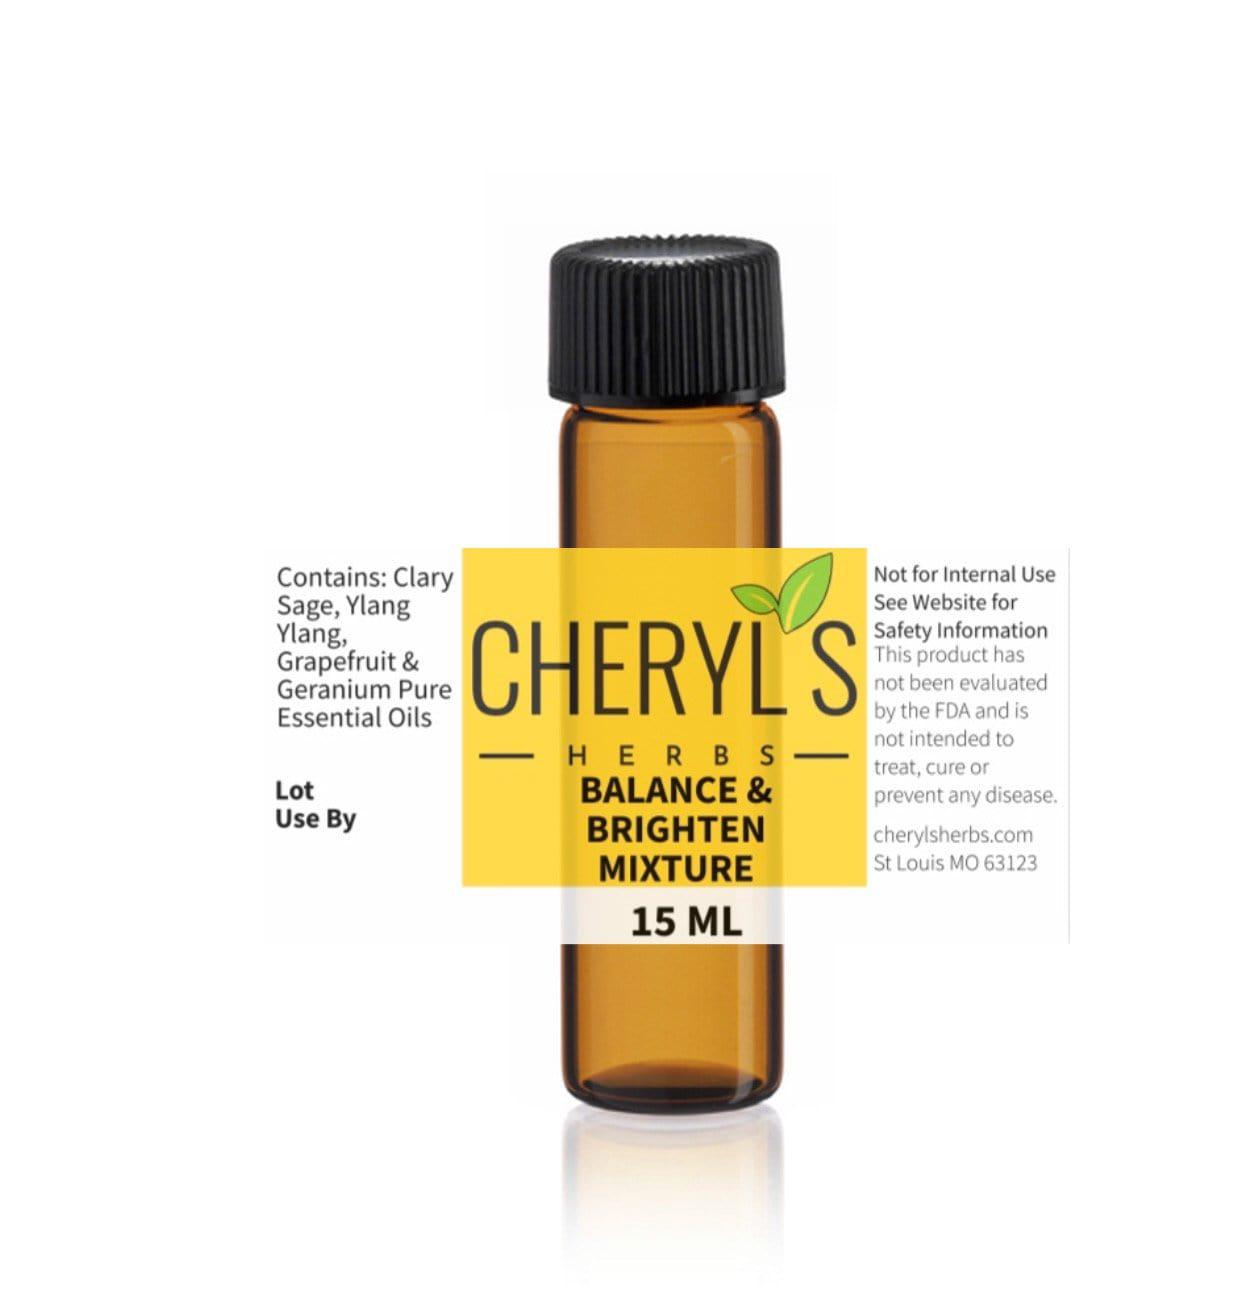 BALANCE BRIGHTEN MIXTURE - Cheryls Herbs